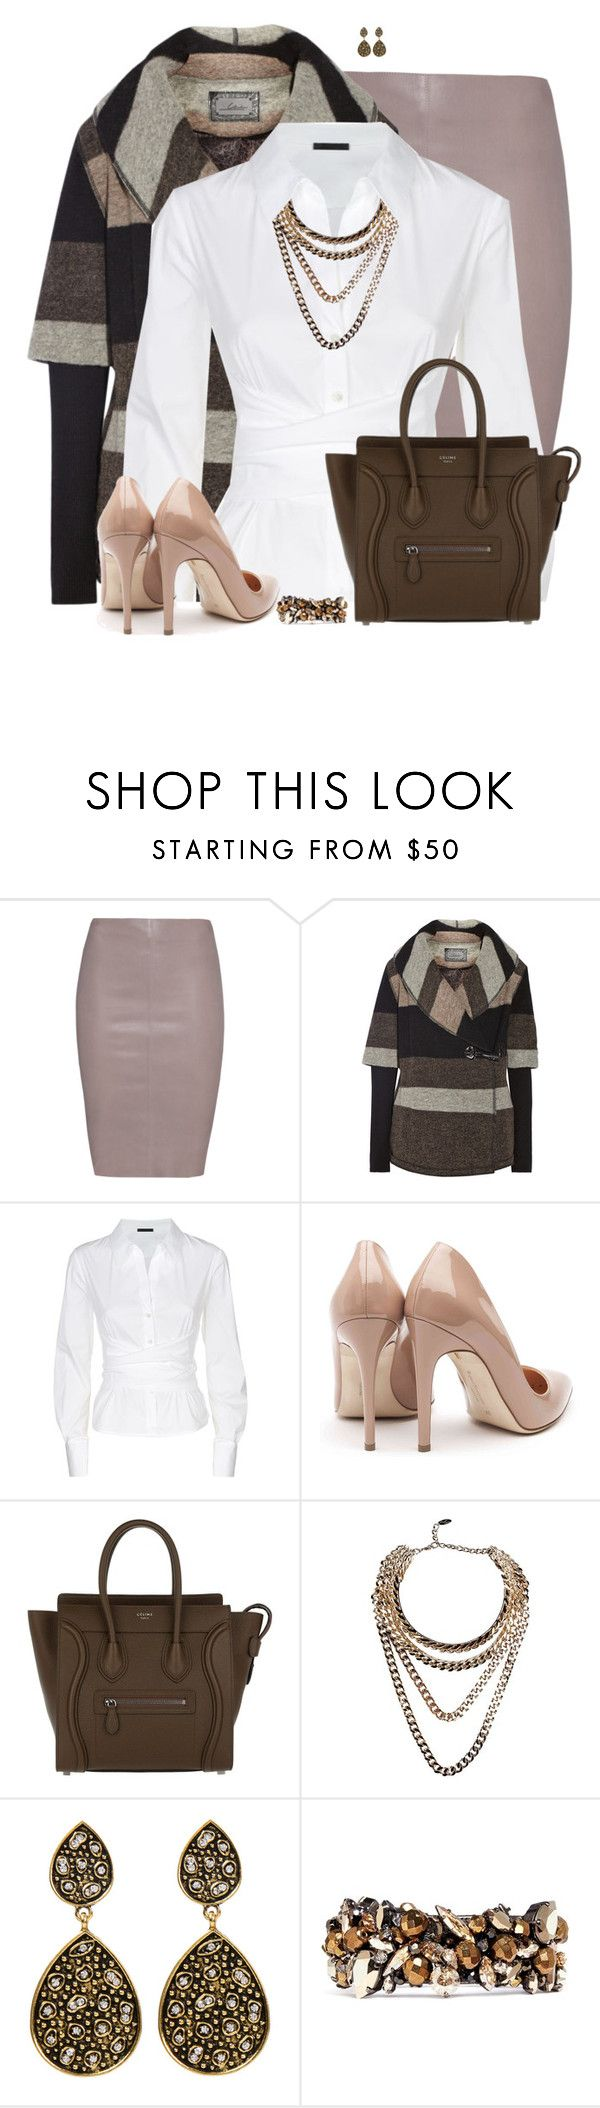 """Leather Pencil Skirt"" by daiscat ❤ liked on Polyvore featuring Jitrois, Line, Donna Karan, Rupert Sanderson, CÉLINE, Giuseppe Zanotti, Amrita Singh and Erickson Beamon"